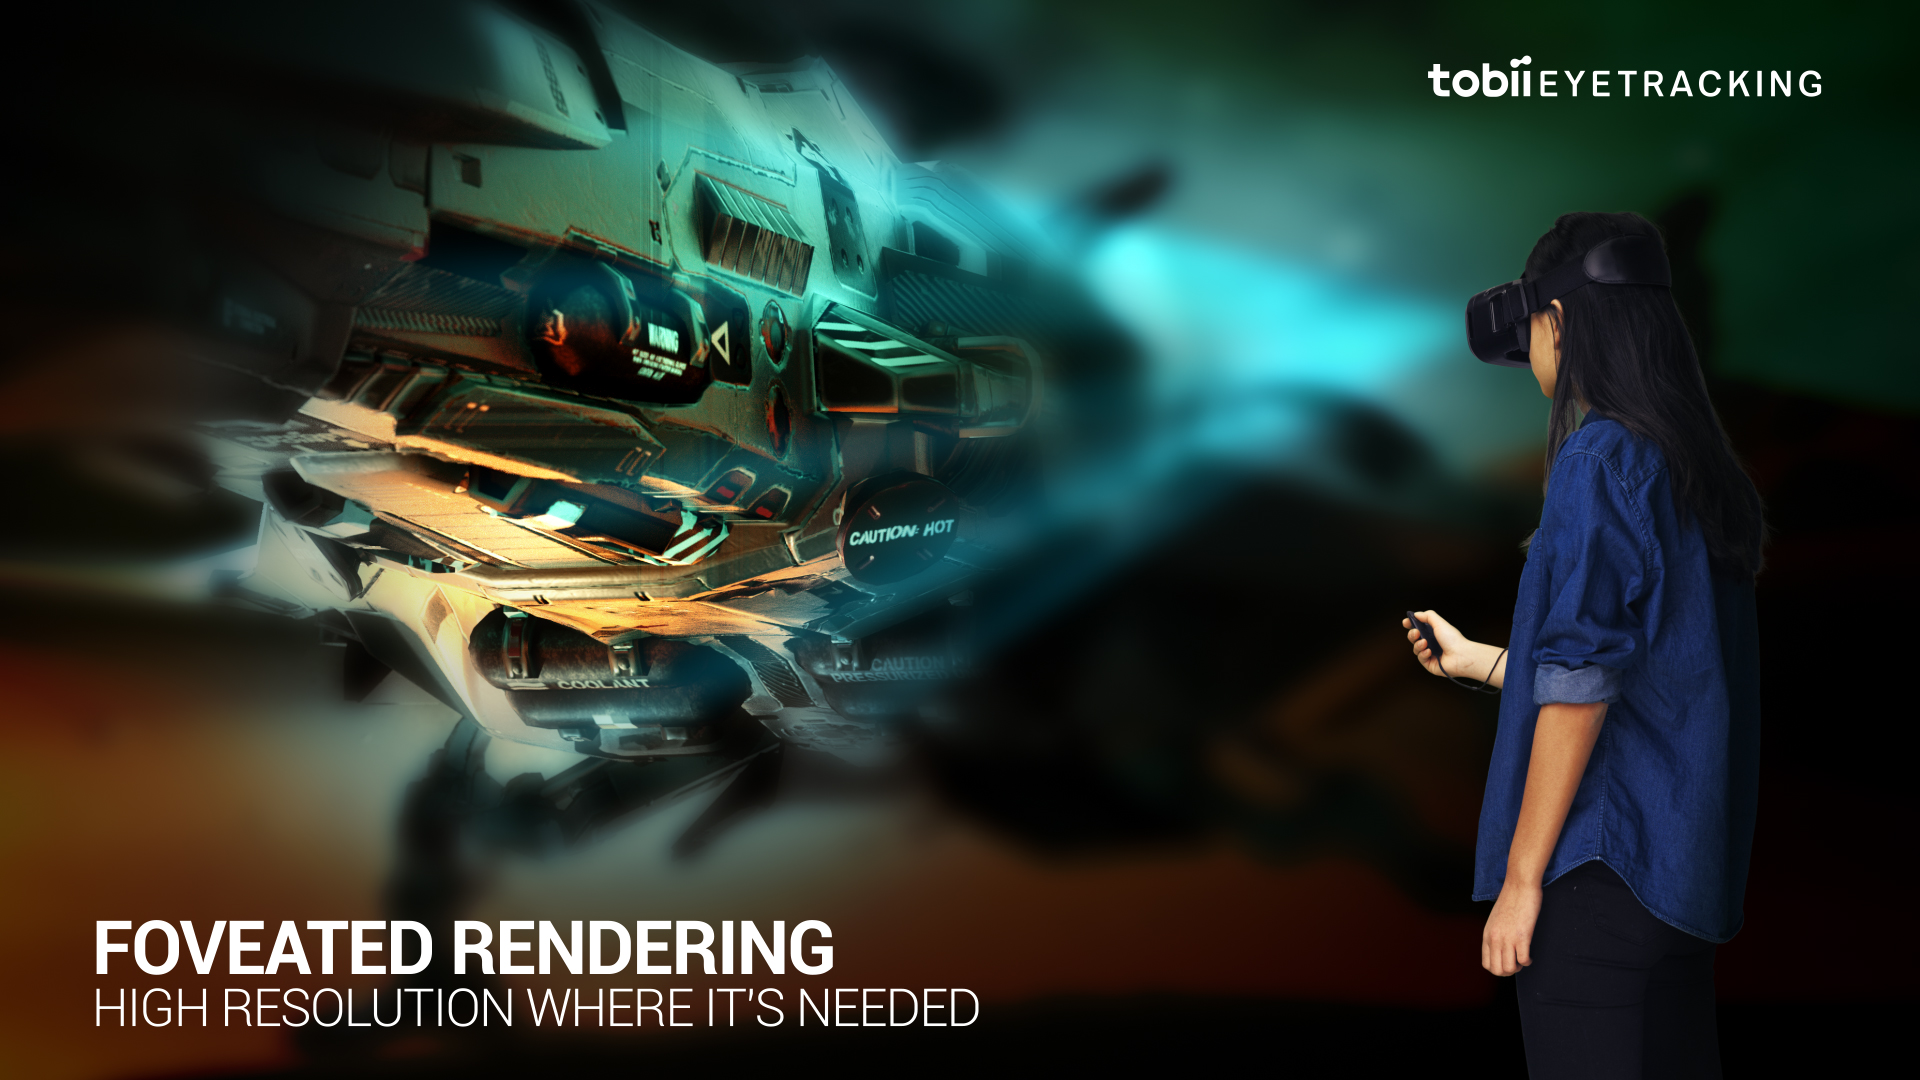 Tobii on the Future of Eye Tracking – 'Where We're Going, We